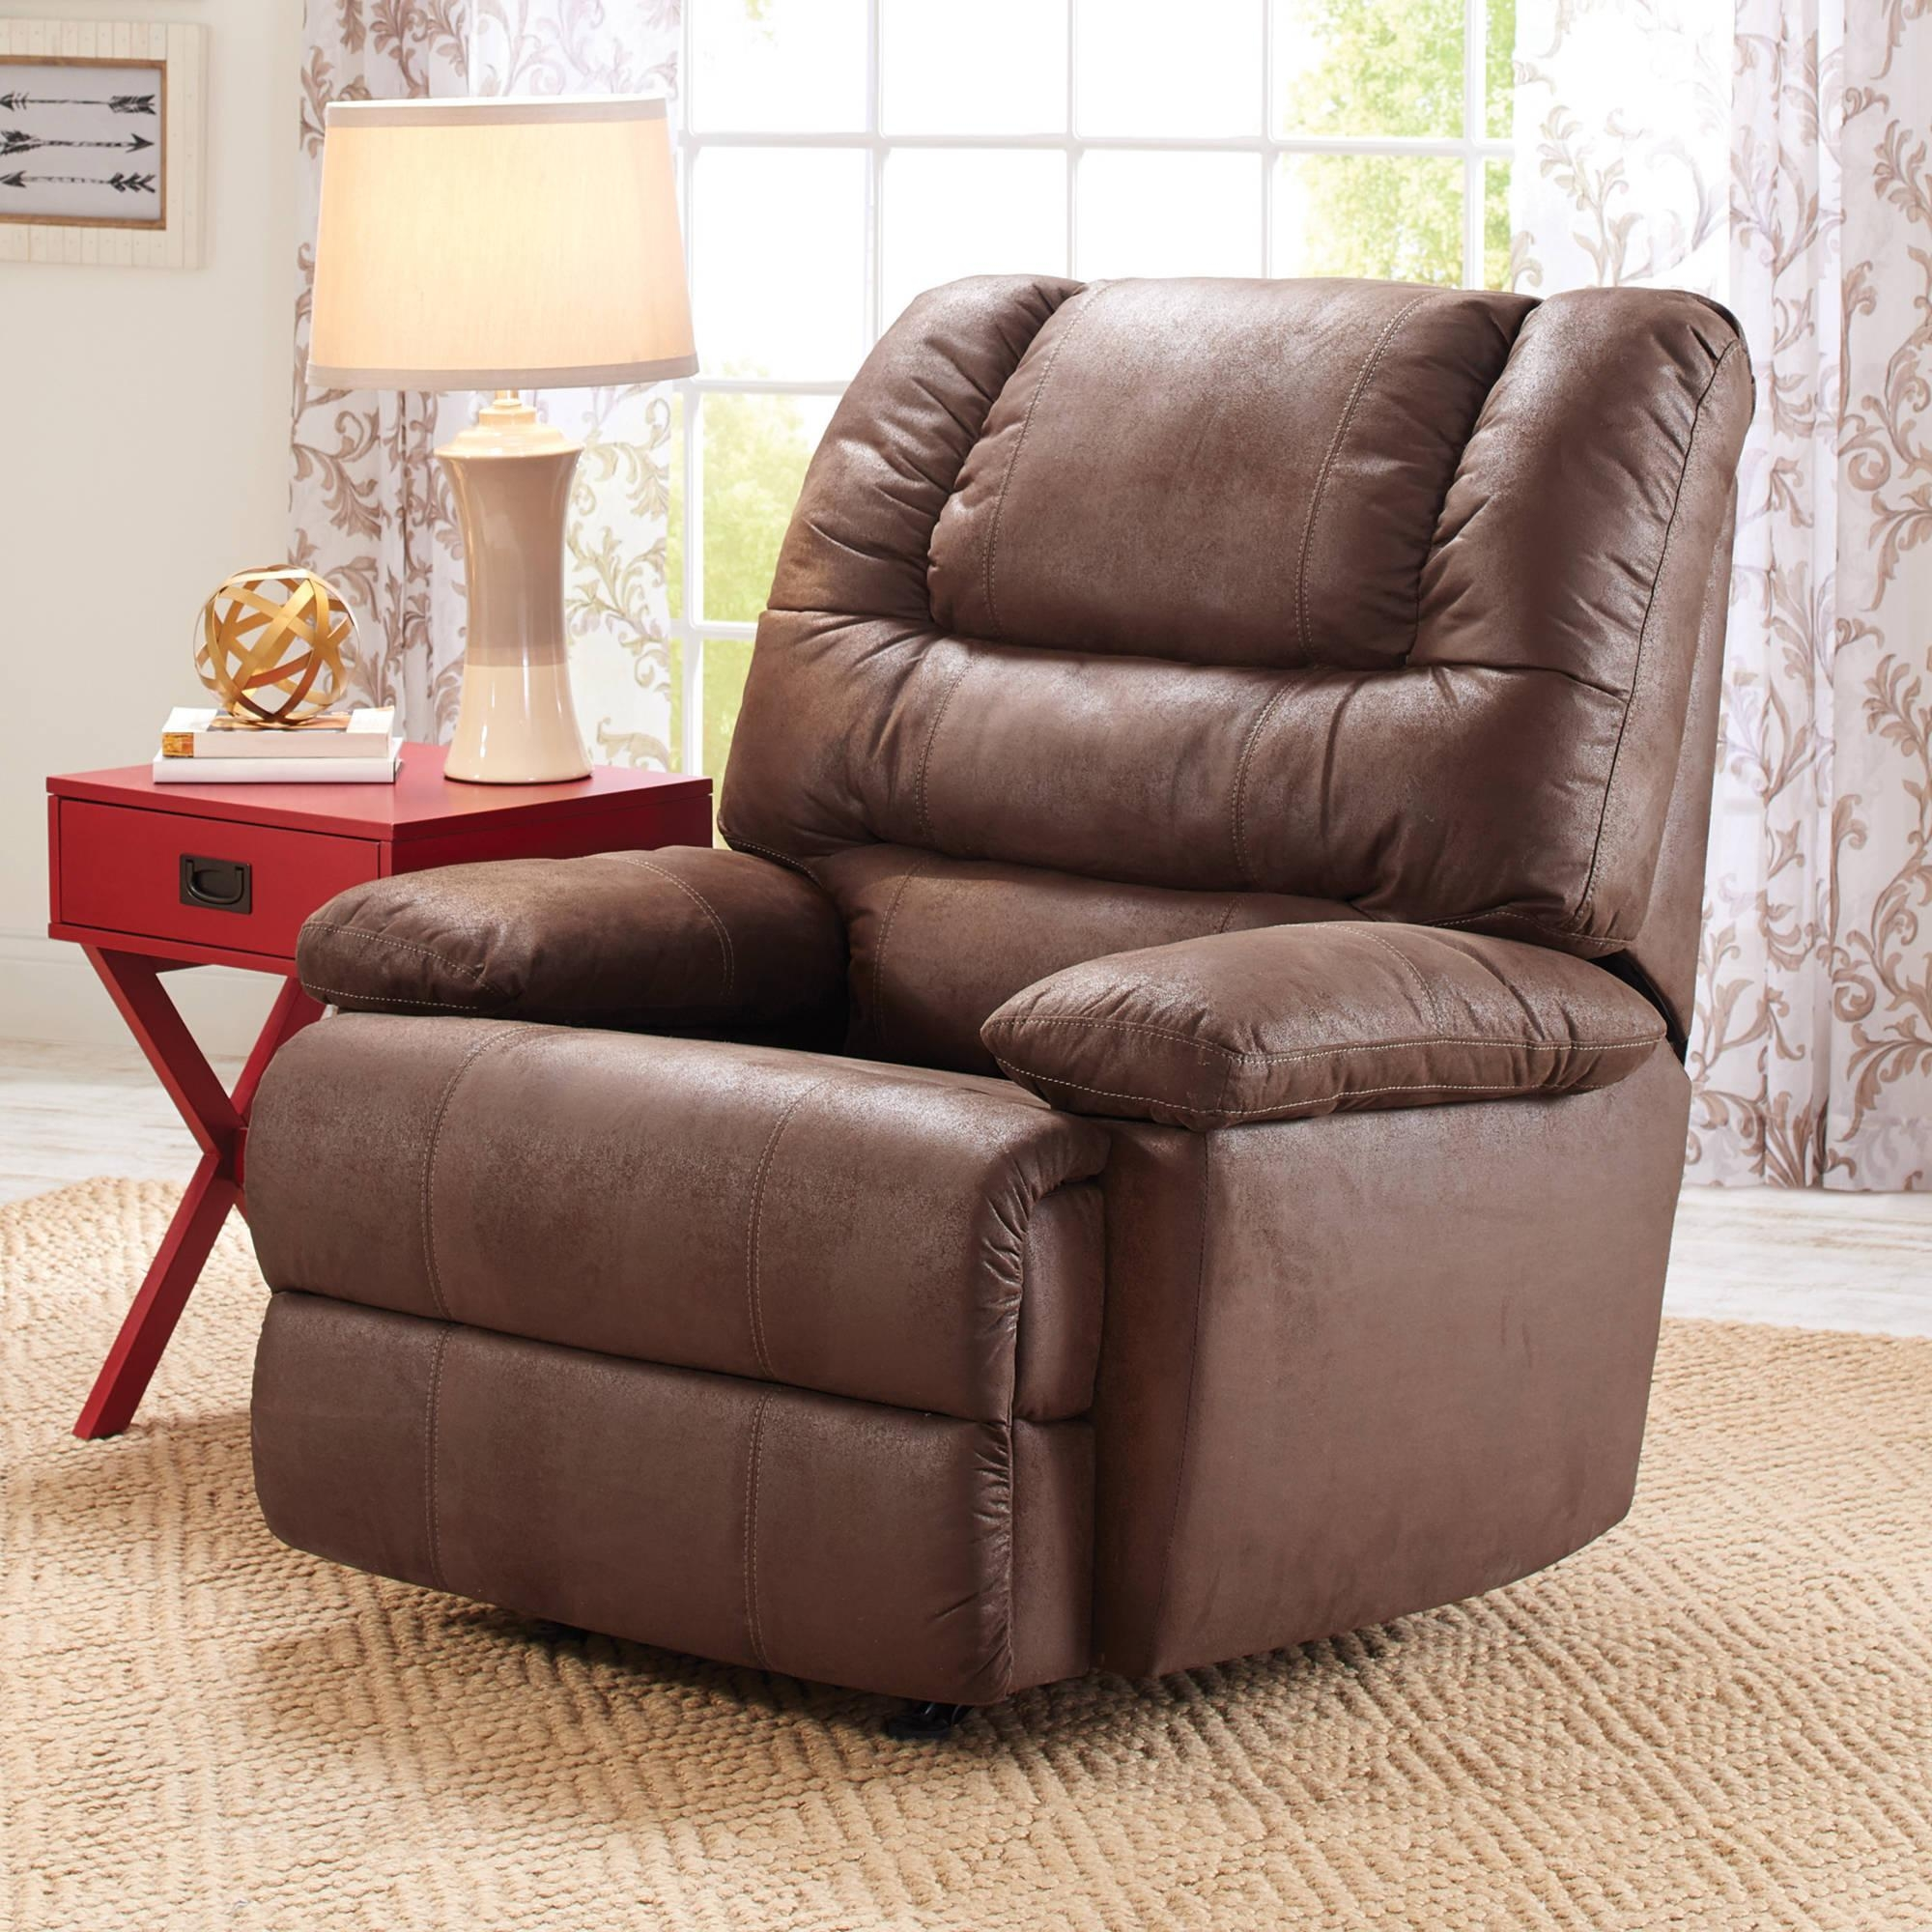 Round Sofa In Living Room Preferred Home Design Within Round Sofa Chair Living Room Furniture (Image 15 of 20)